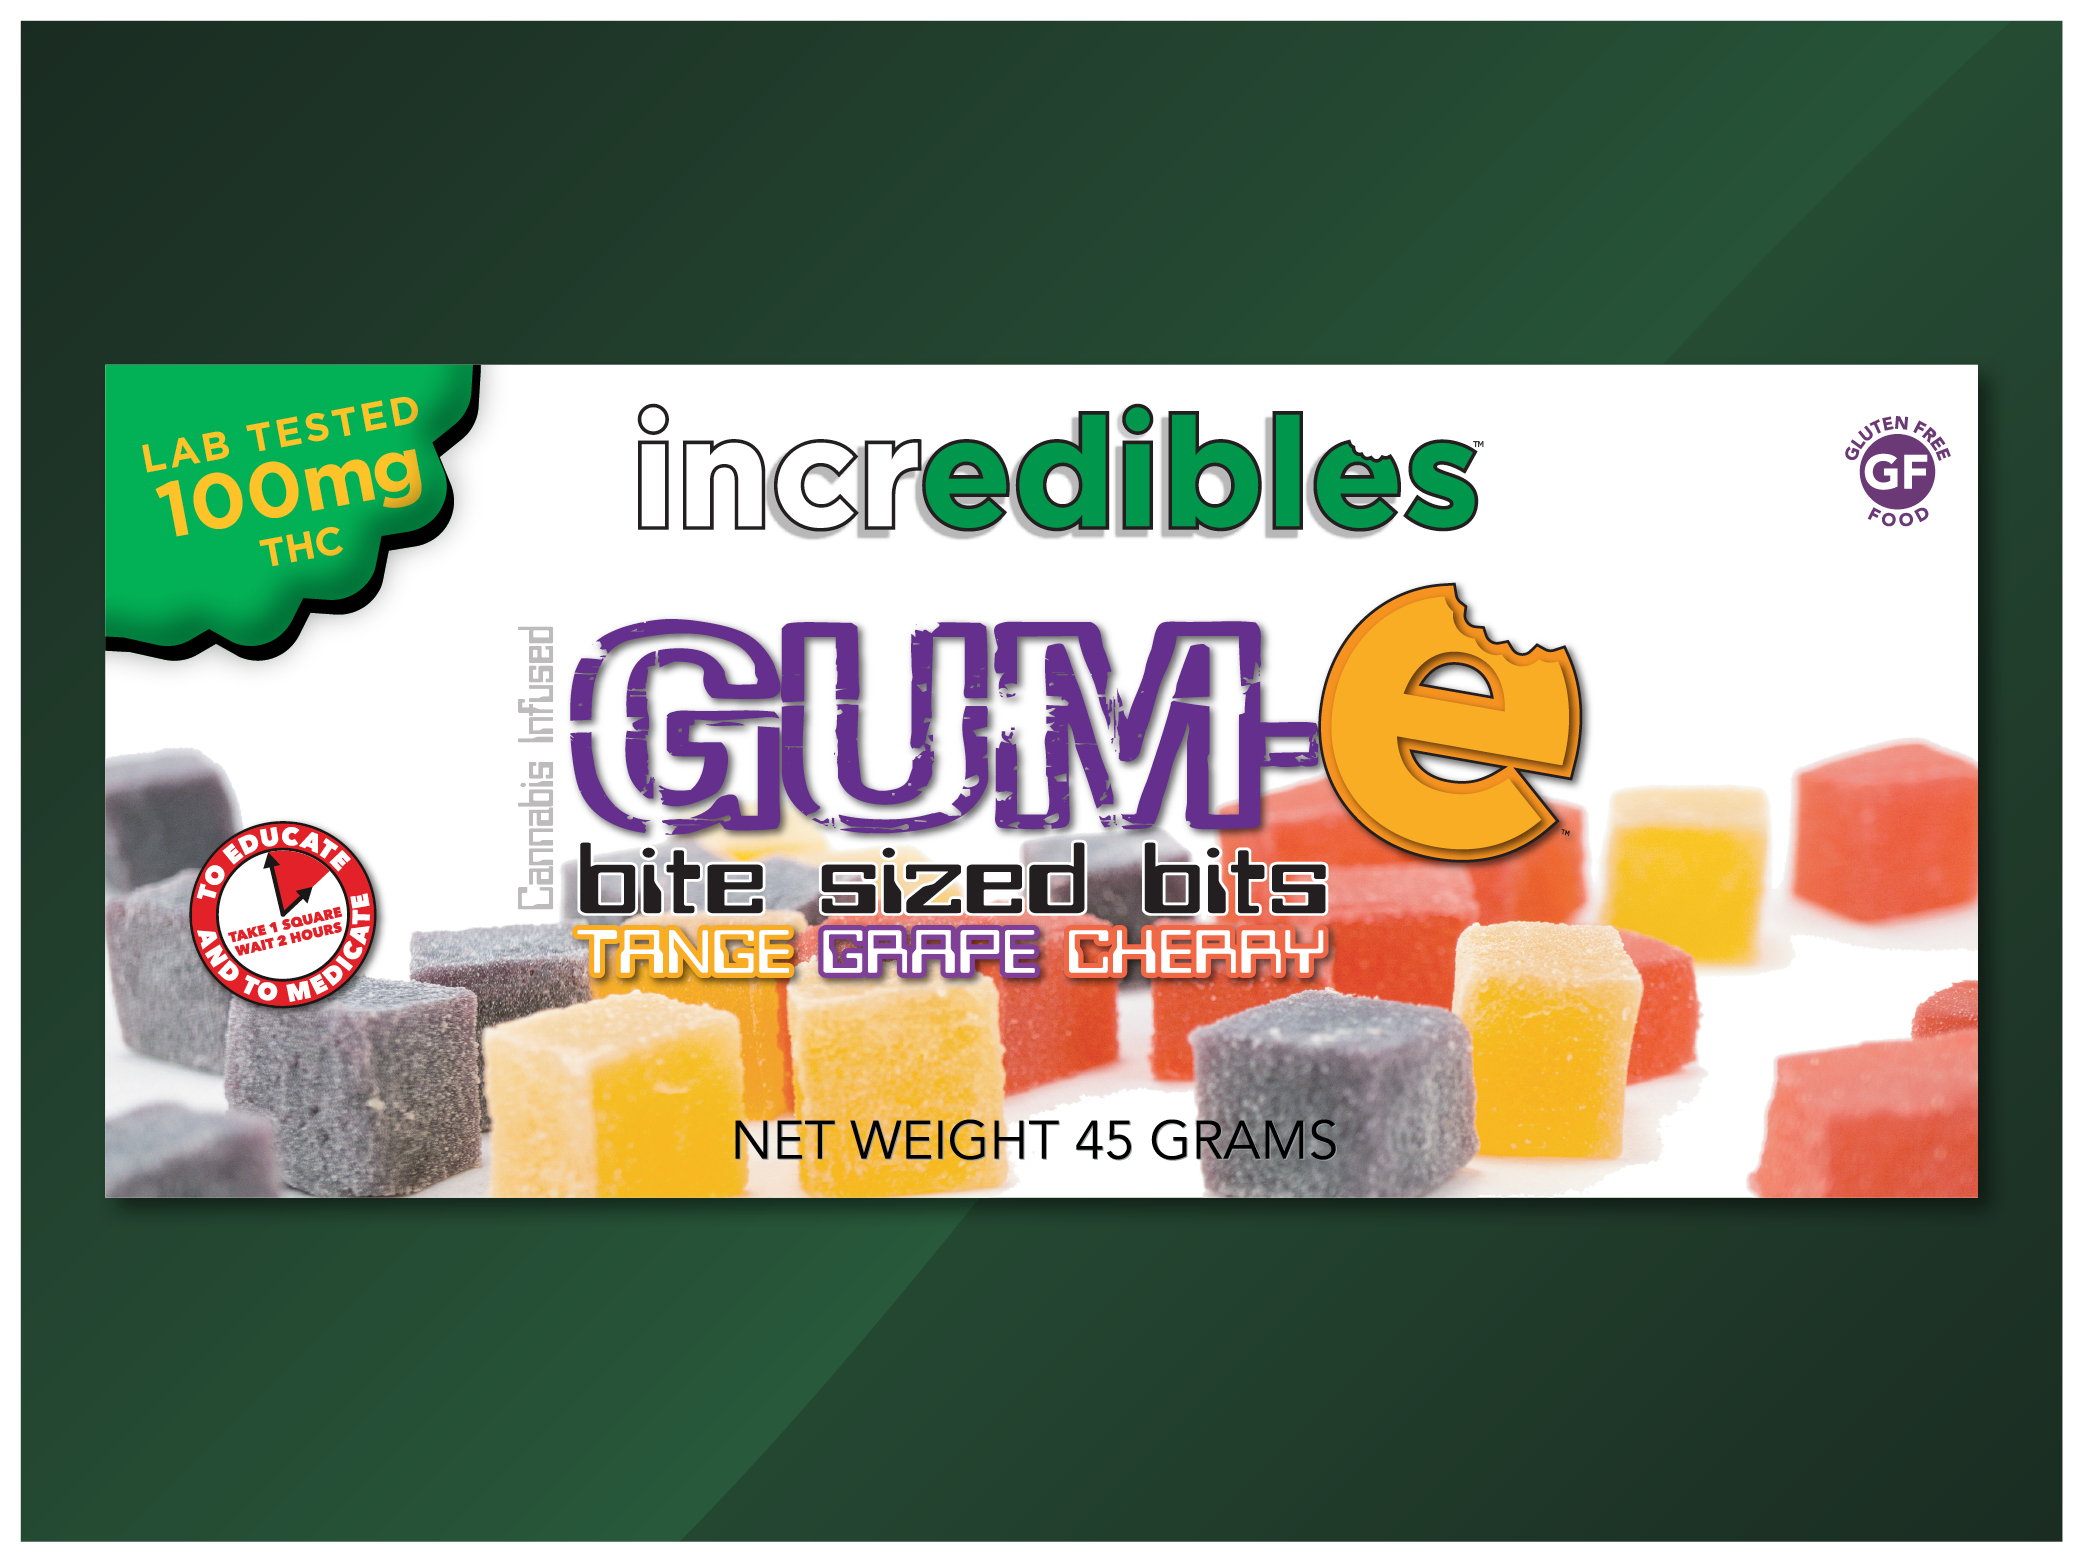 Incredibles GUM-e Bite Sized Bits